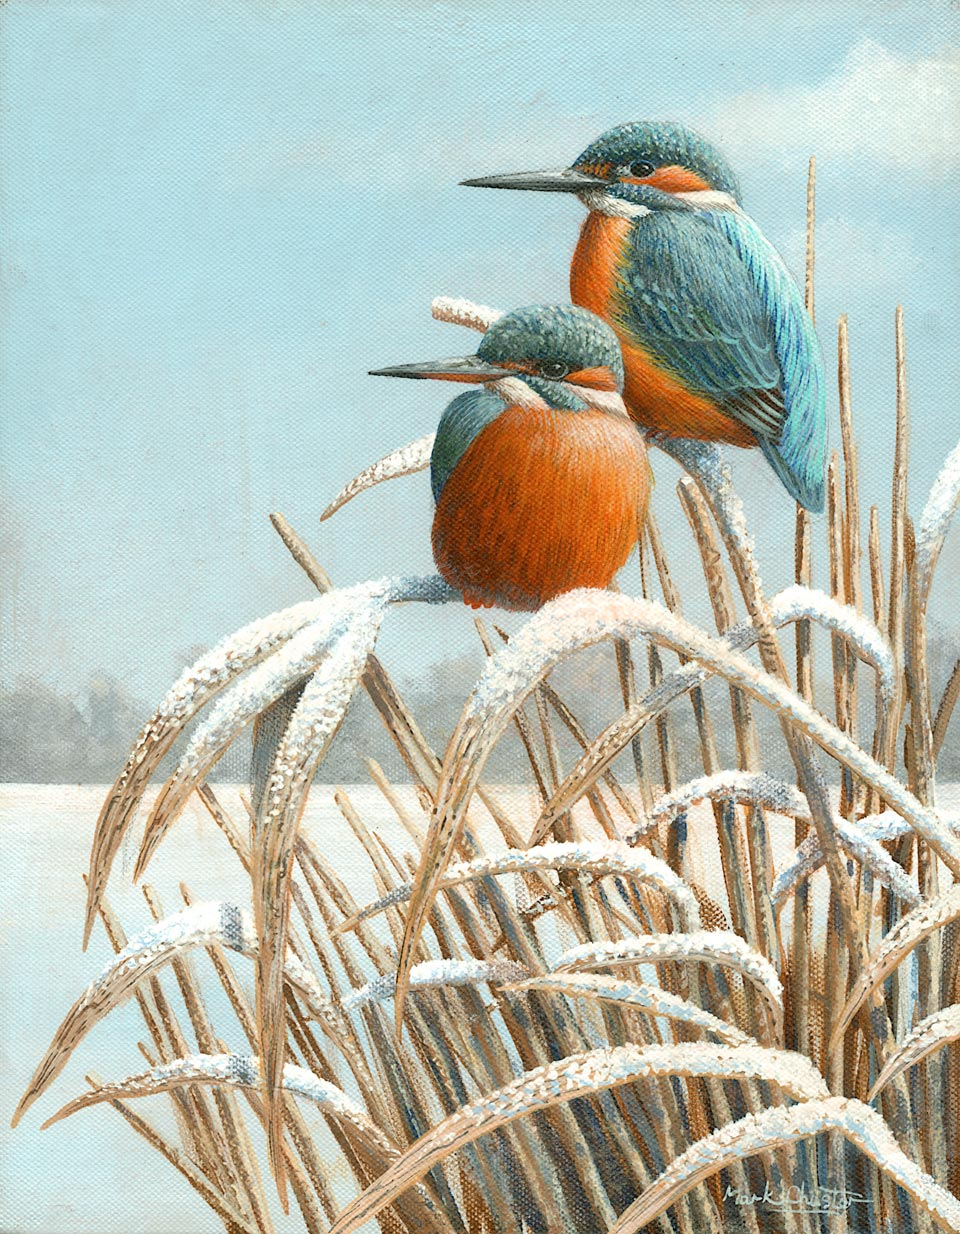 Winter Reeds by Mark Chester